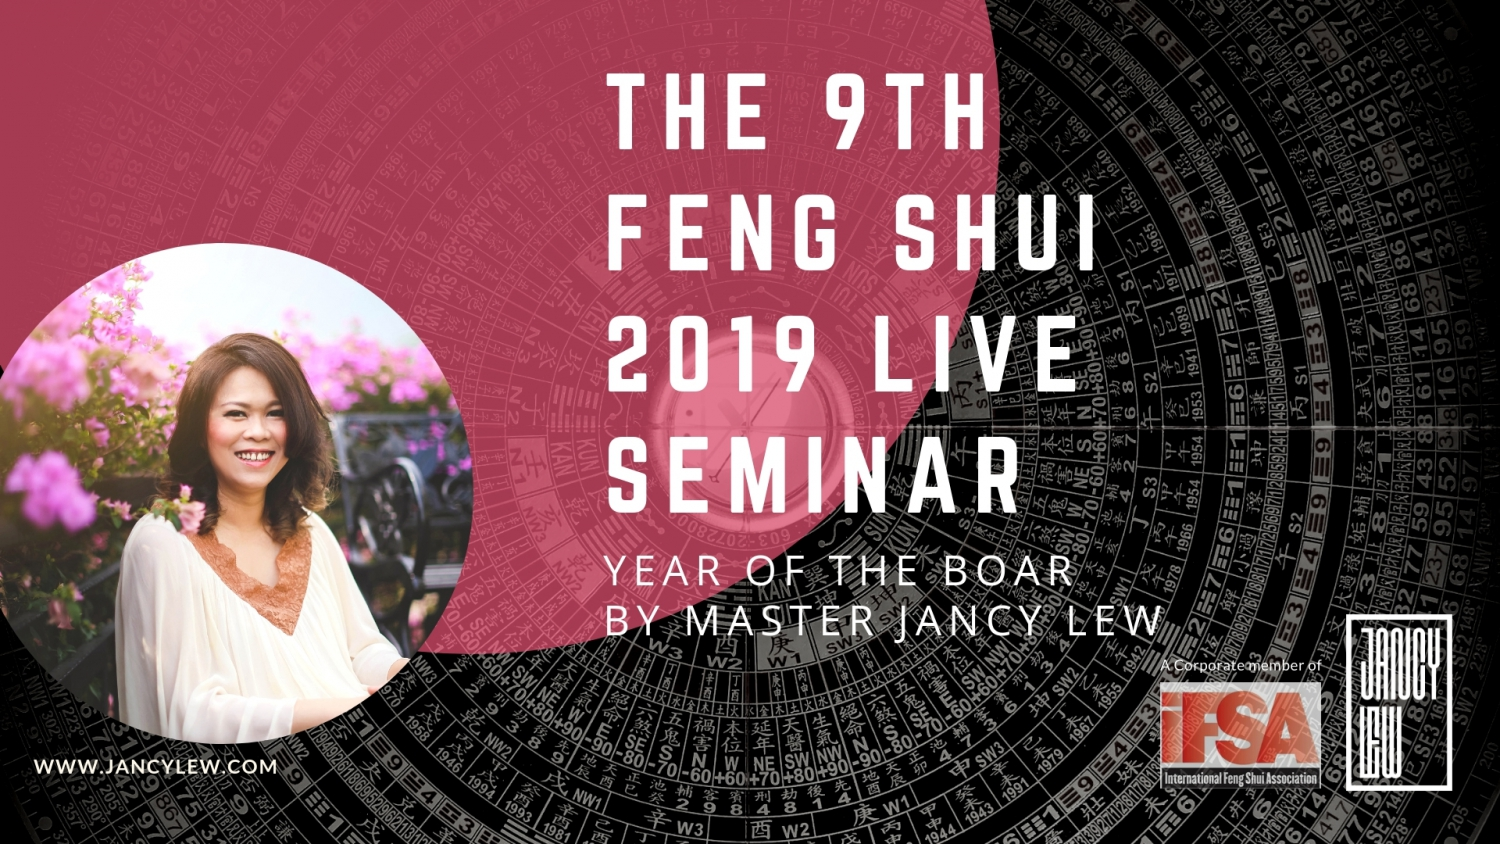 The 9th Feng Shui Live Seminar by Master Jancy Lew